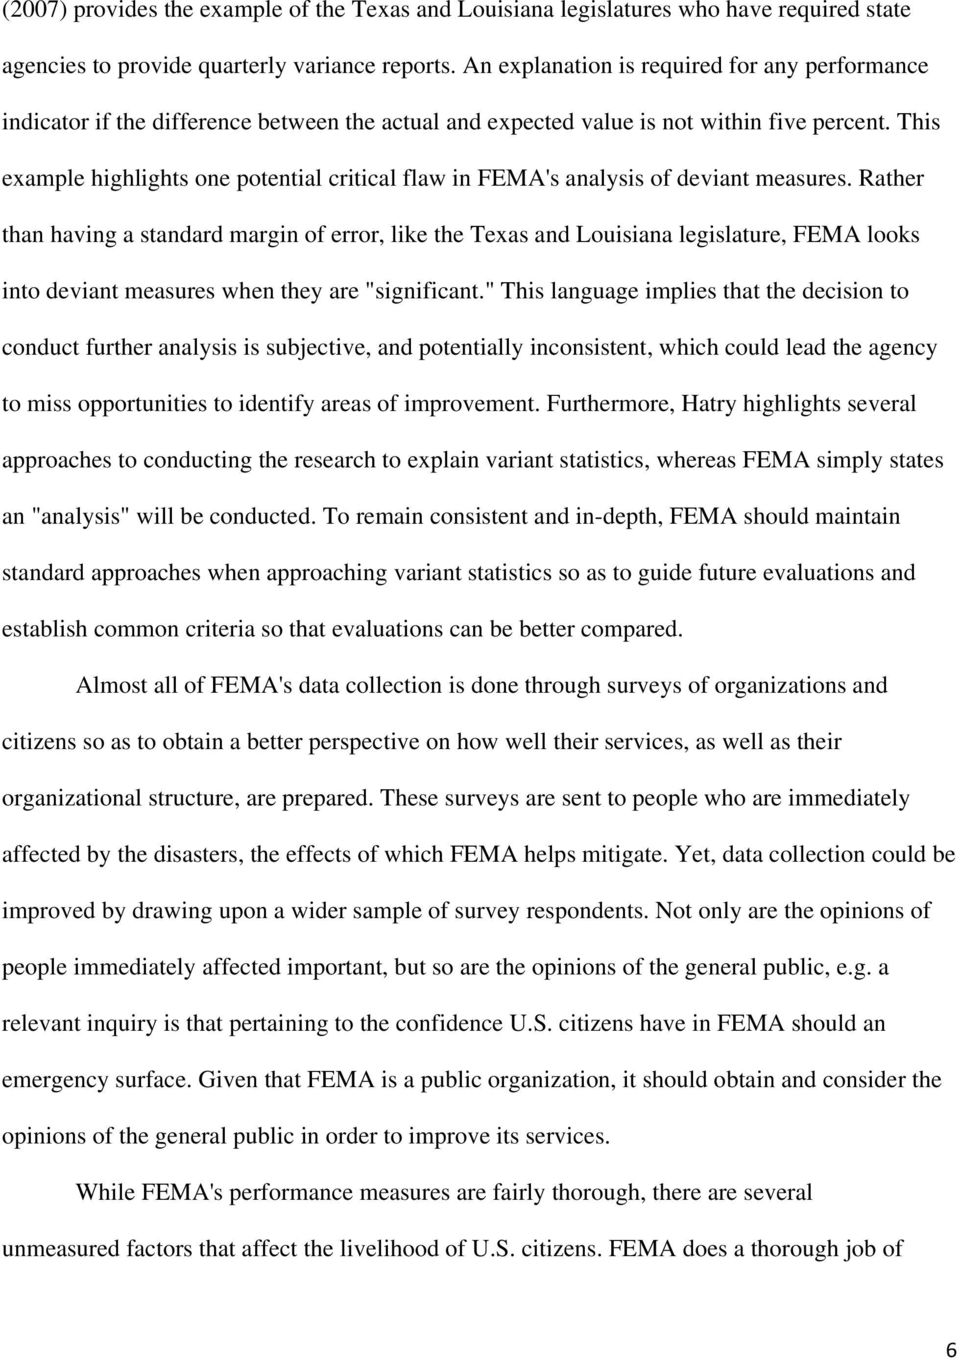 This example highlights one potential critical flaw in FEMA's analysis of deviant measures.